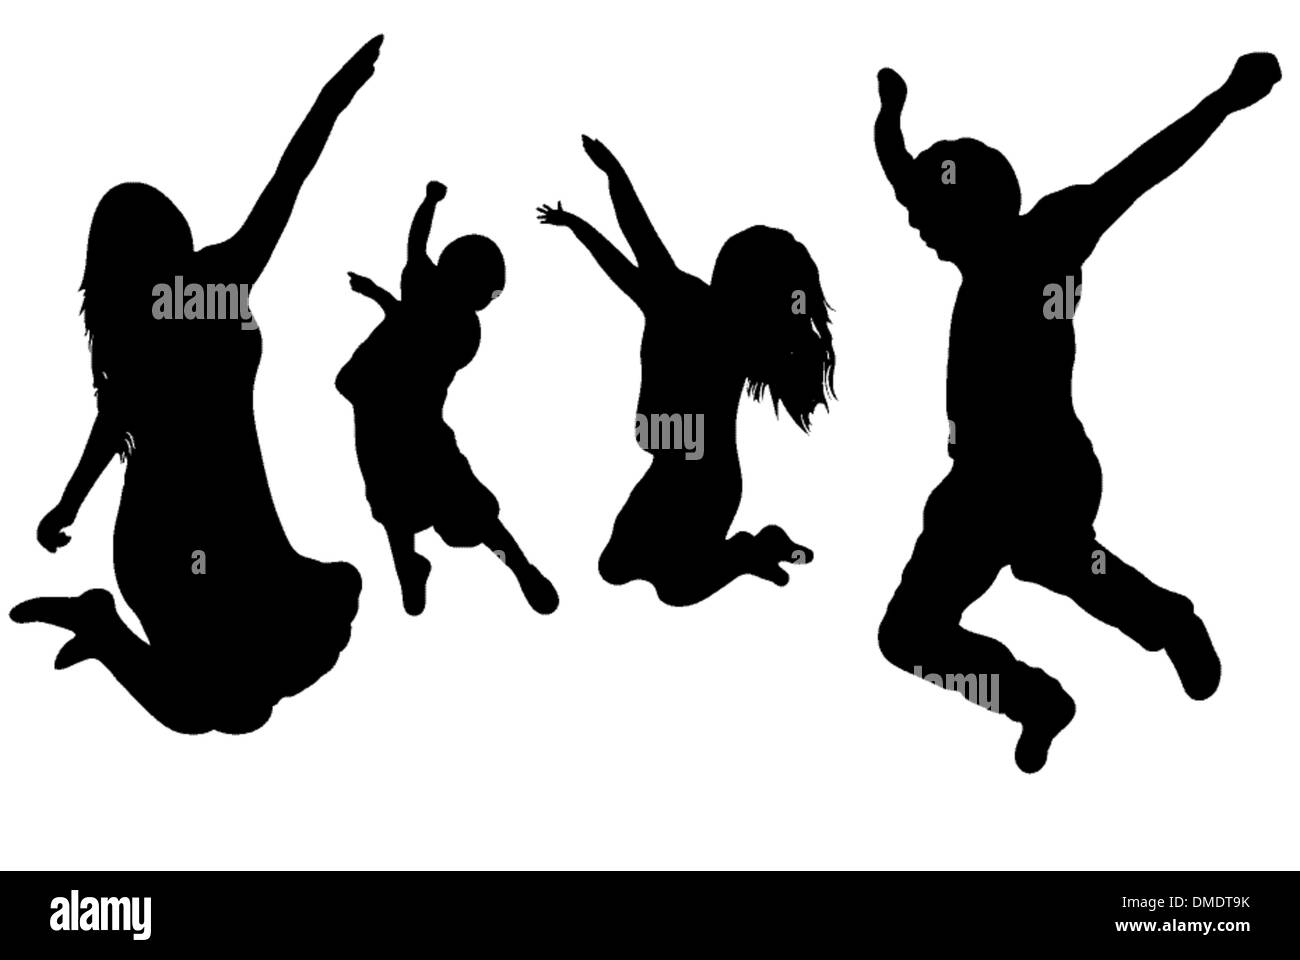 Jumping Family - Stock Image